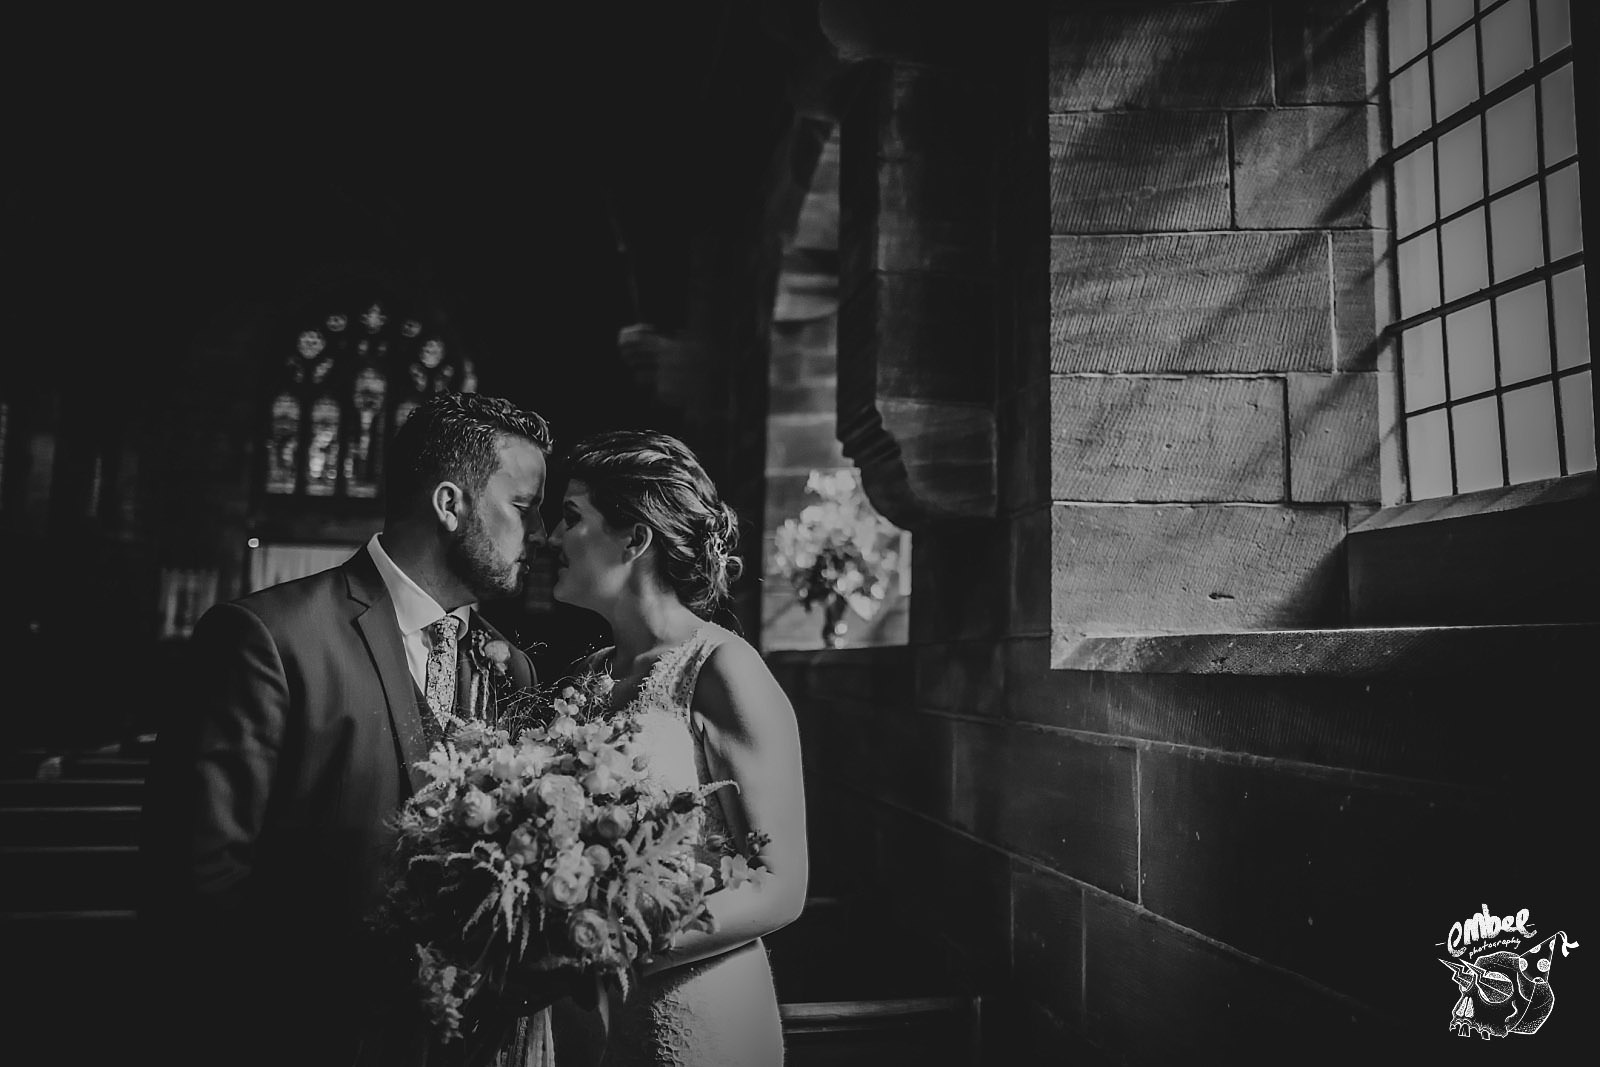 bride and groom in a church with window light pouring in